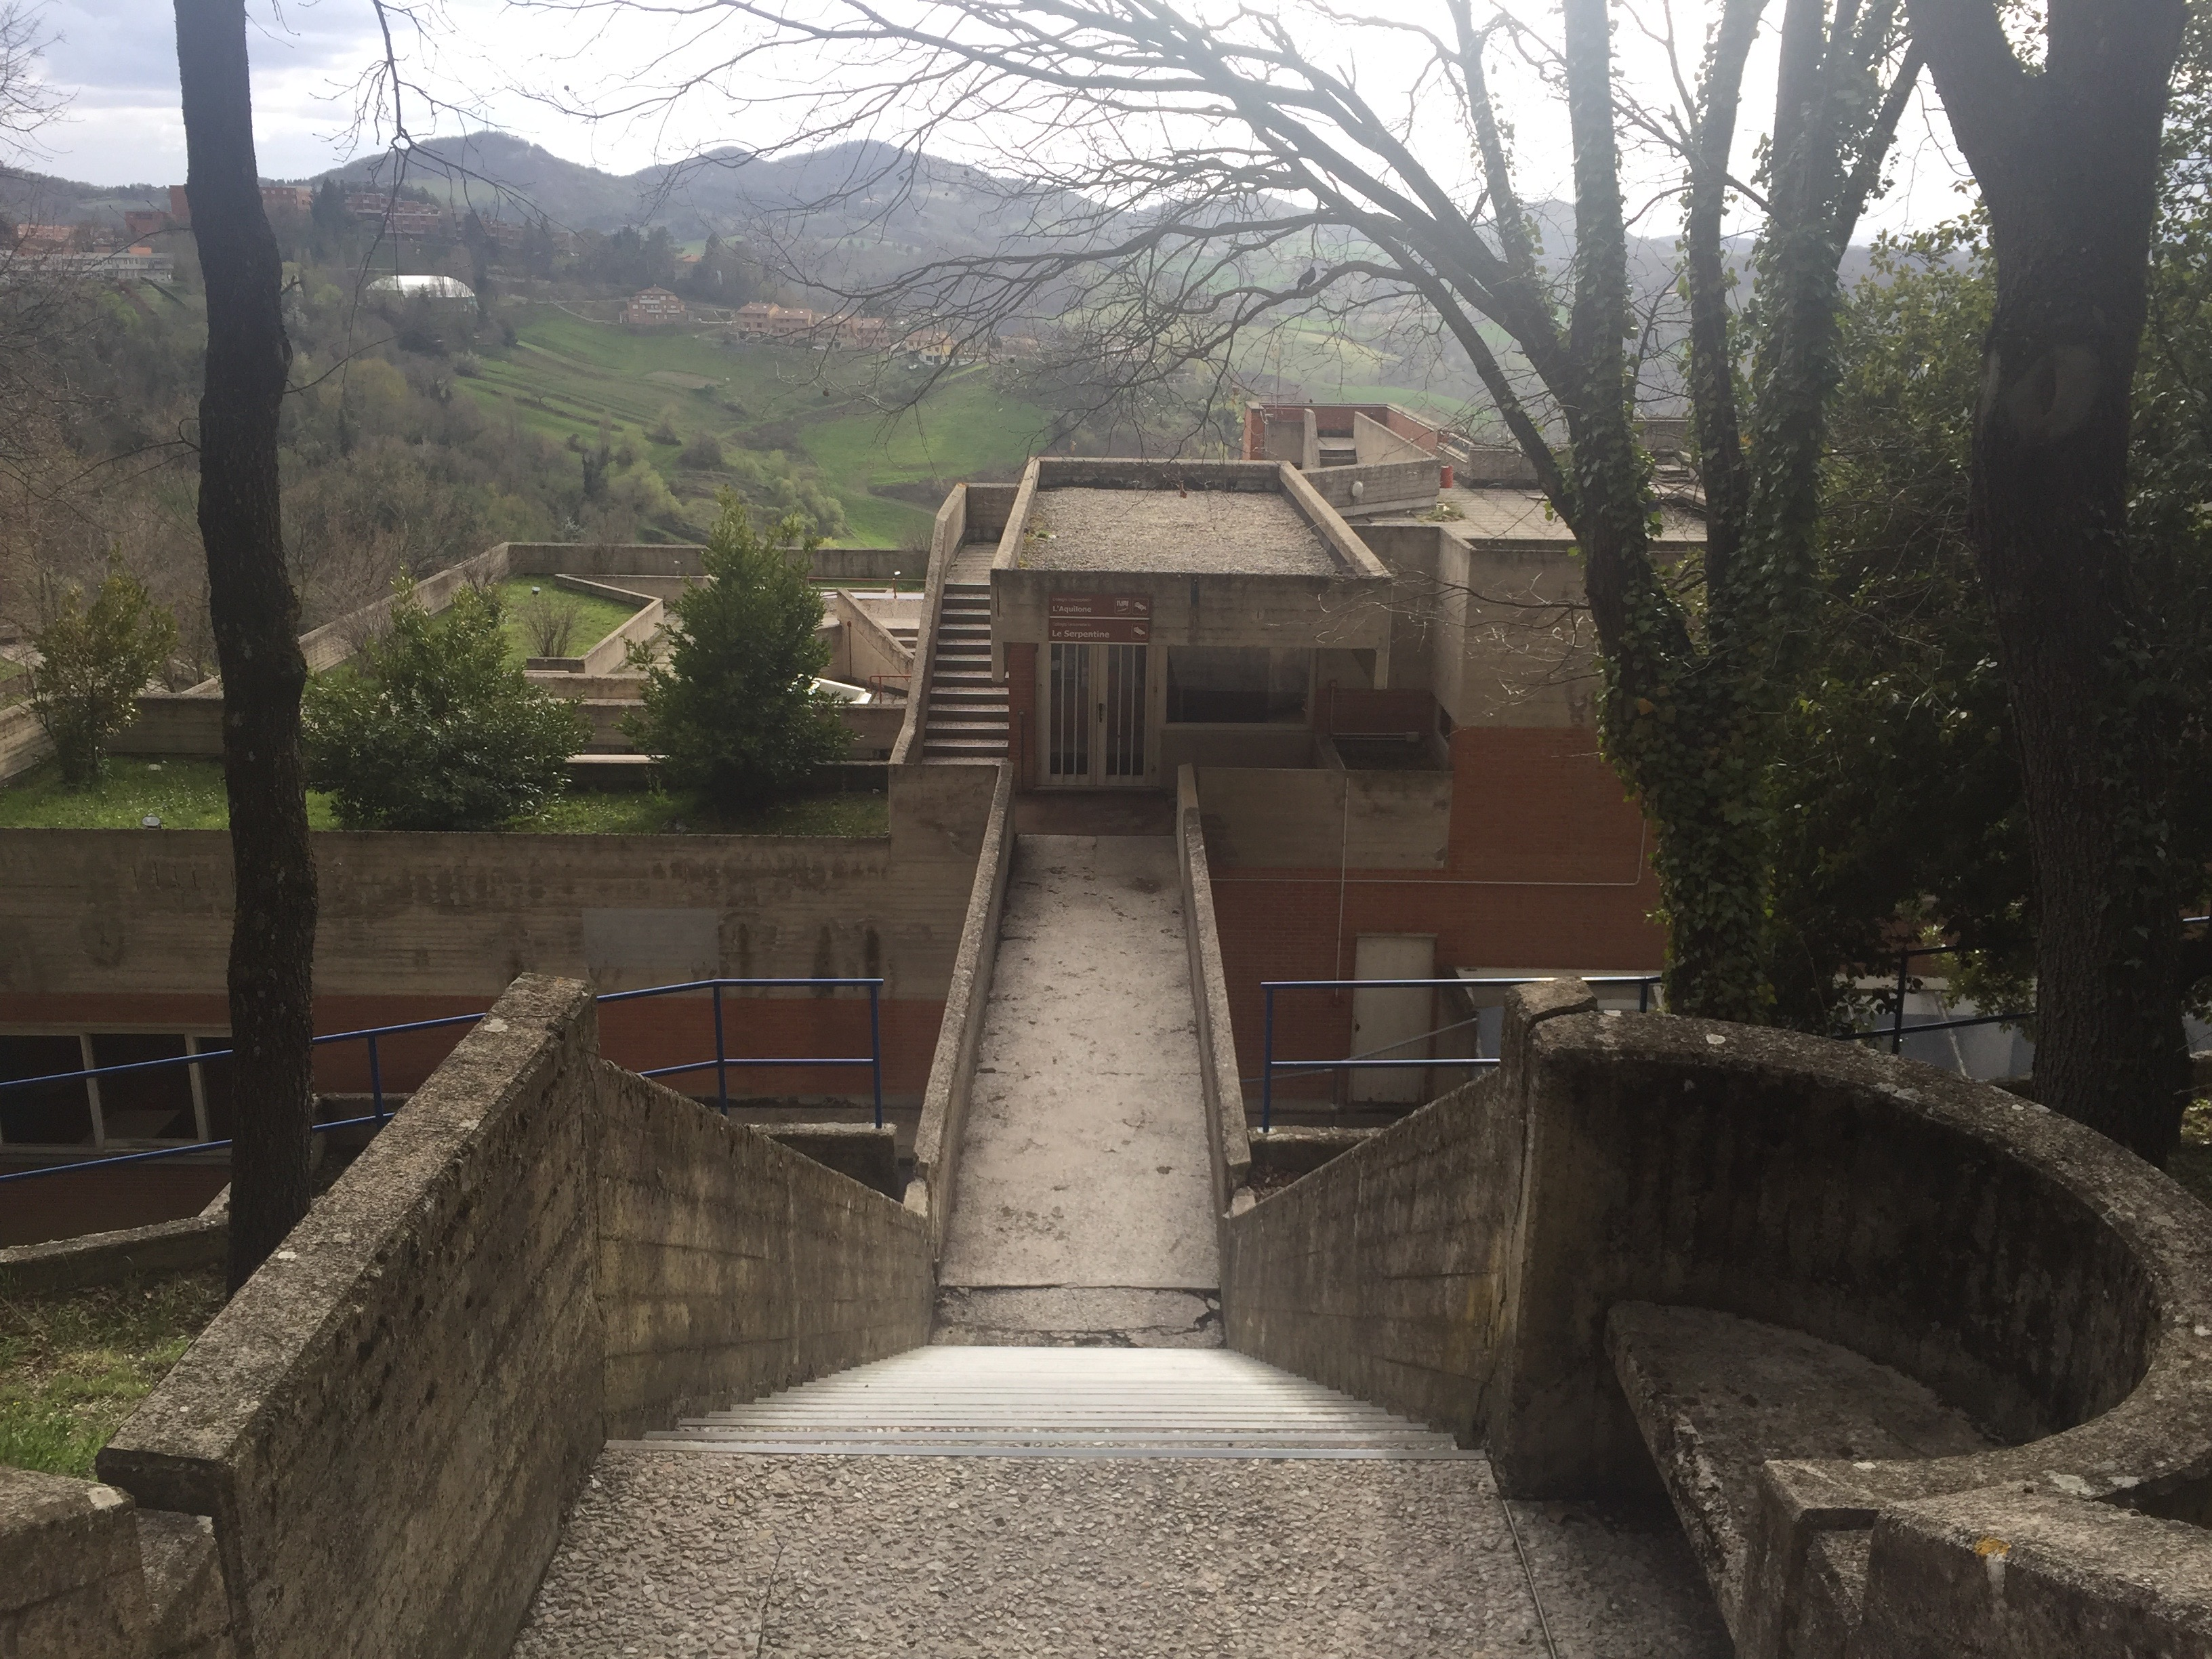 The path from Il Colle takes you to Aquilone, where one of the two laundry rooms of Collegio del Colle is located. Photo by Bridget Hepworth